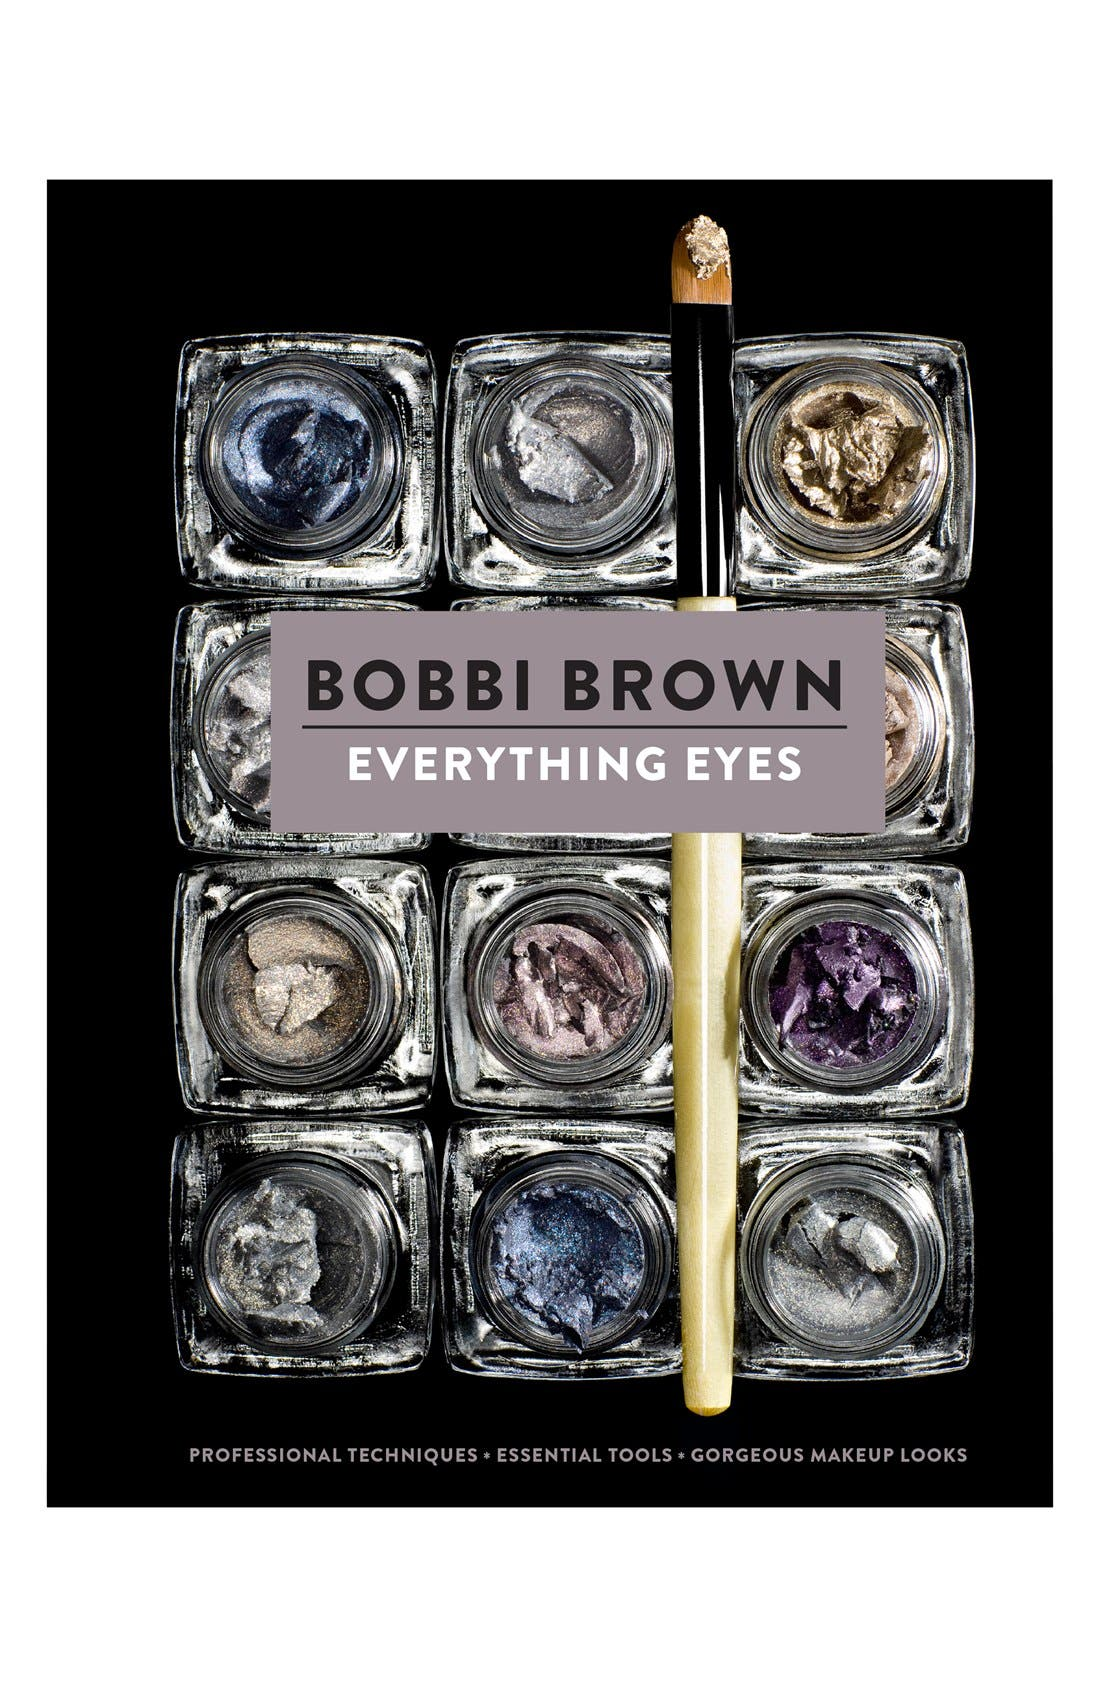 BOBBI BROWN 'Everything Eyes' Book